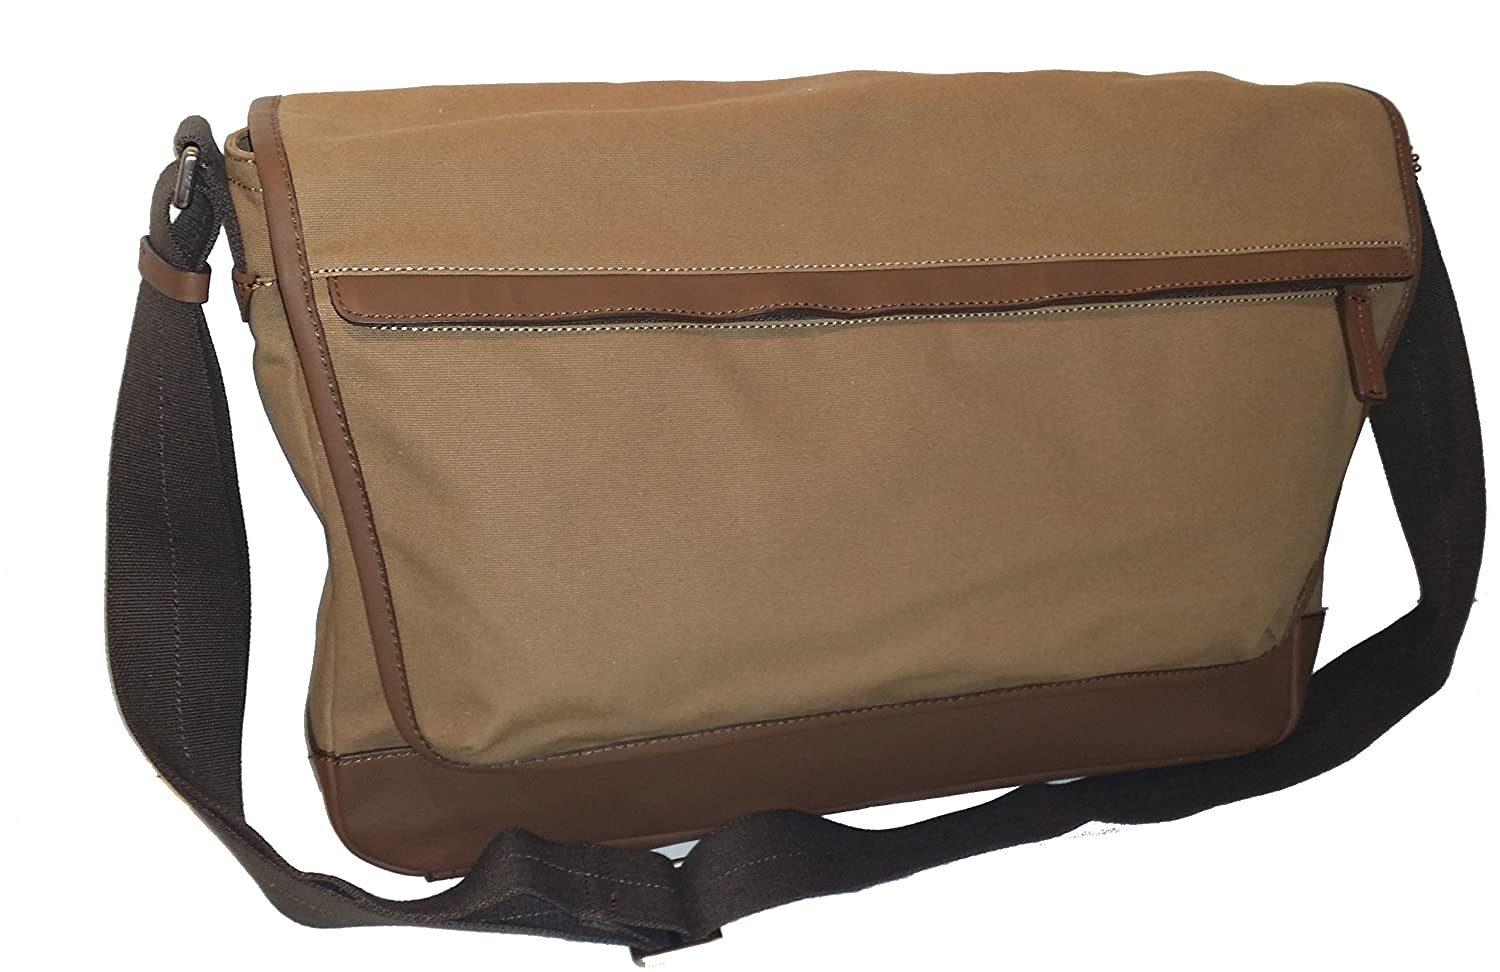 a61c672059 Amazon.com  Coach Men Camden Canvas Business Laptop School Messenger  Shoulder Bag Khaki 70829  Shoes